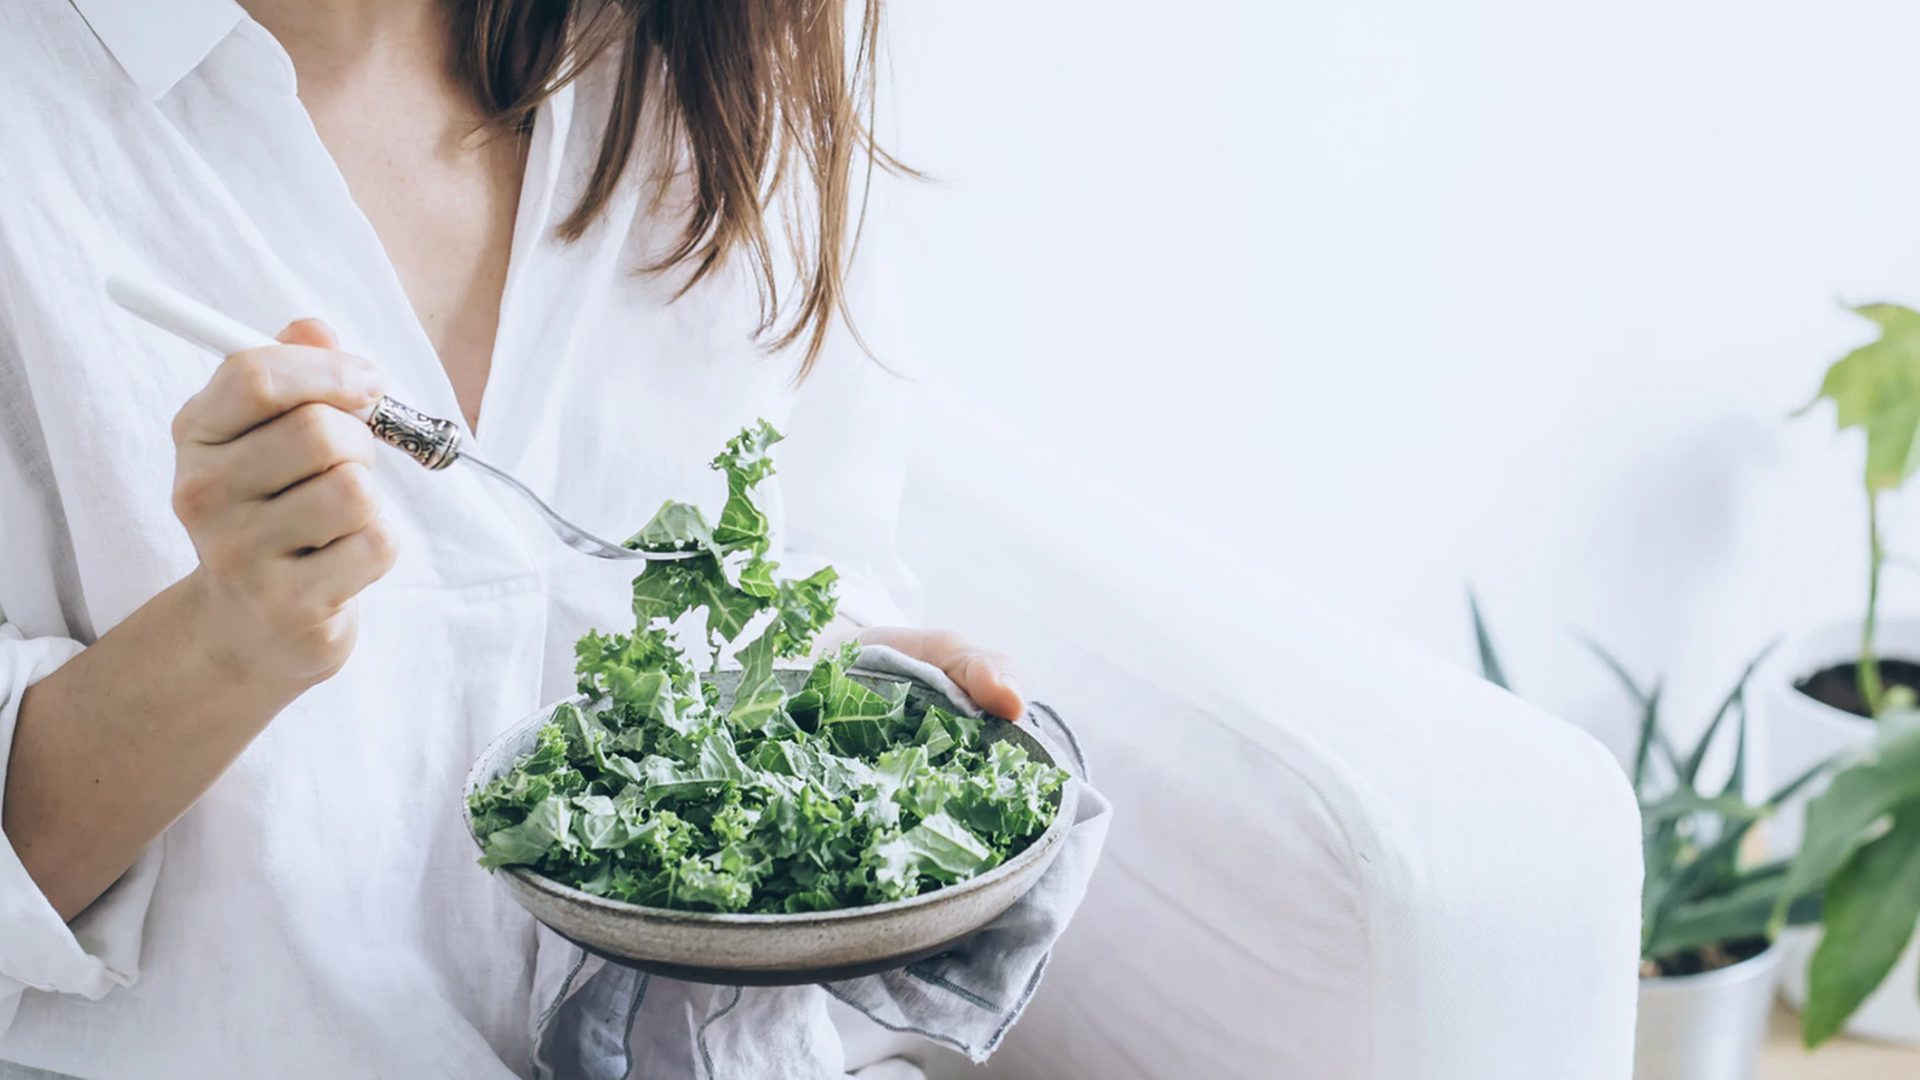 Top 5 Healthy Foods To Eat Every Day